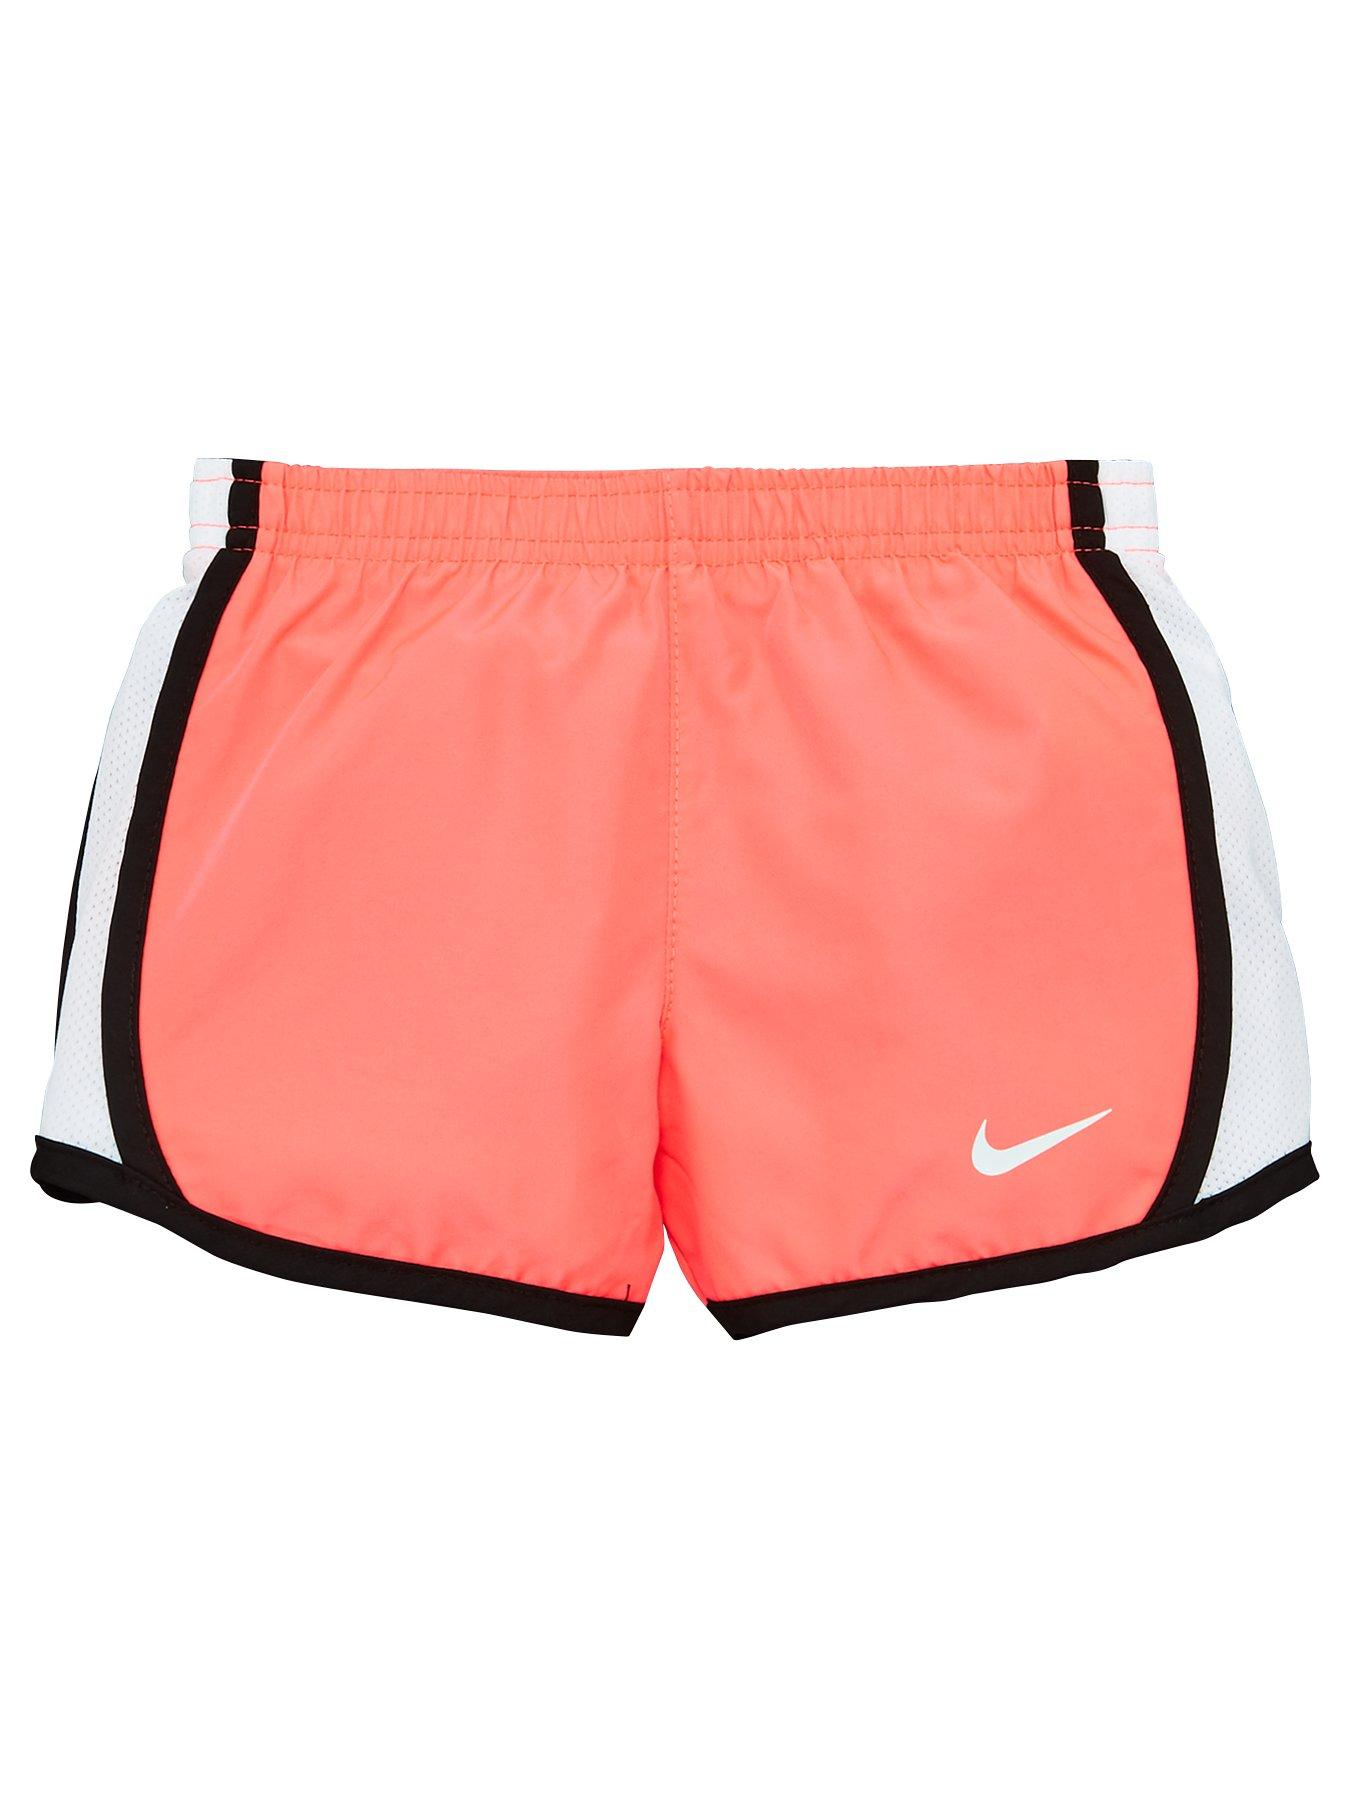 Nike Girls Training Shorts L 14 16 Perforated Gym Grey Racer Pink